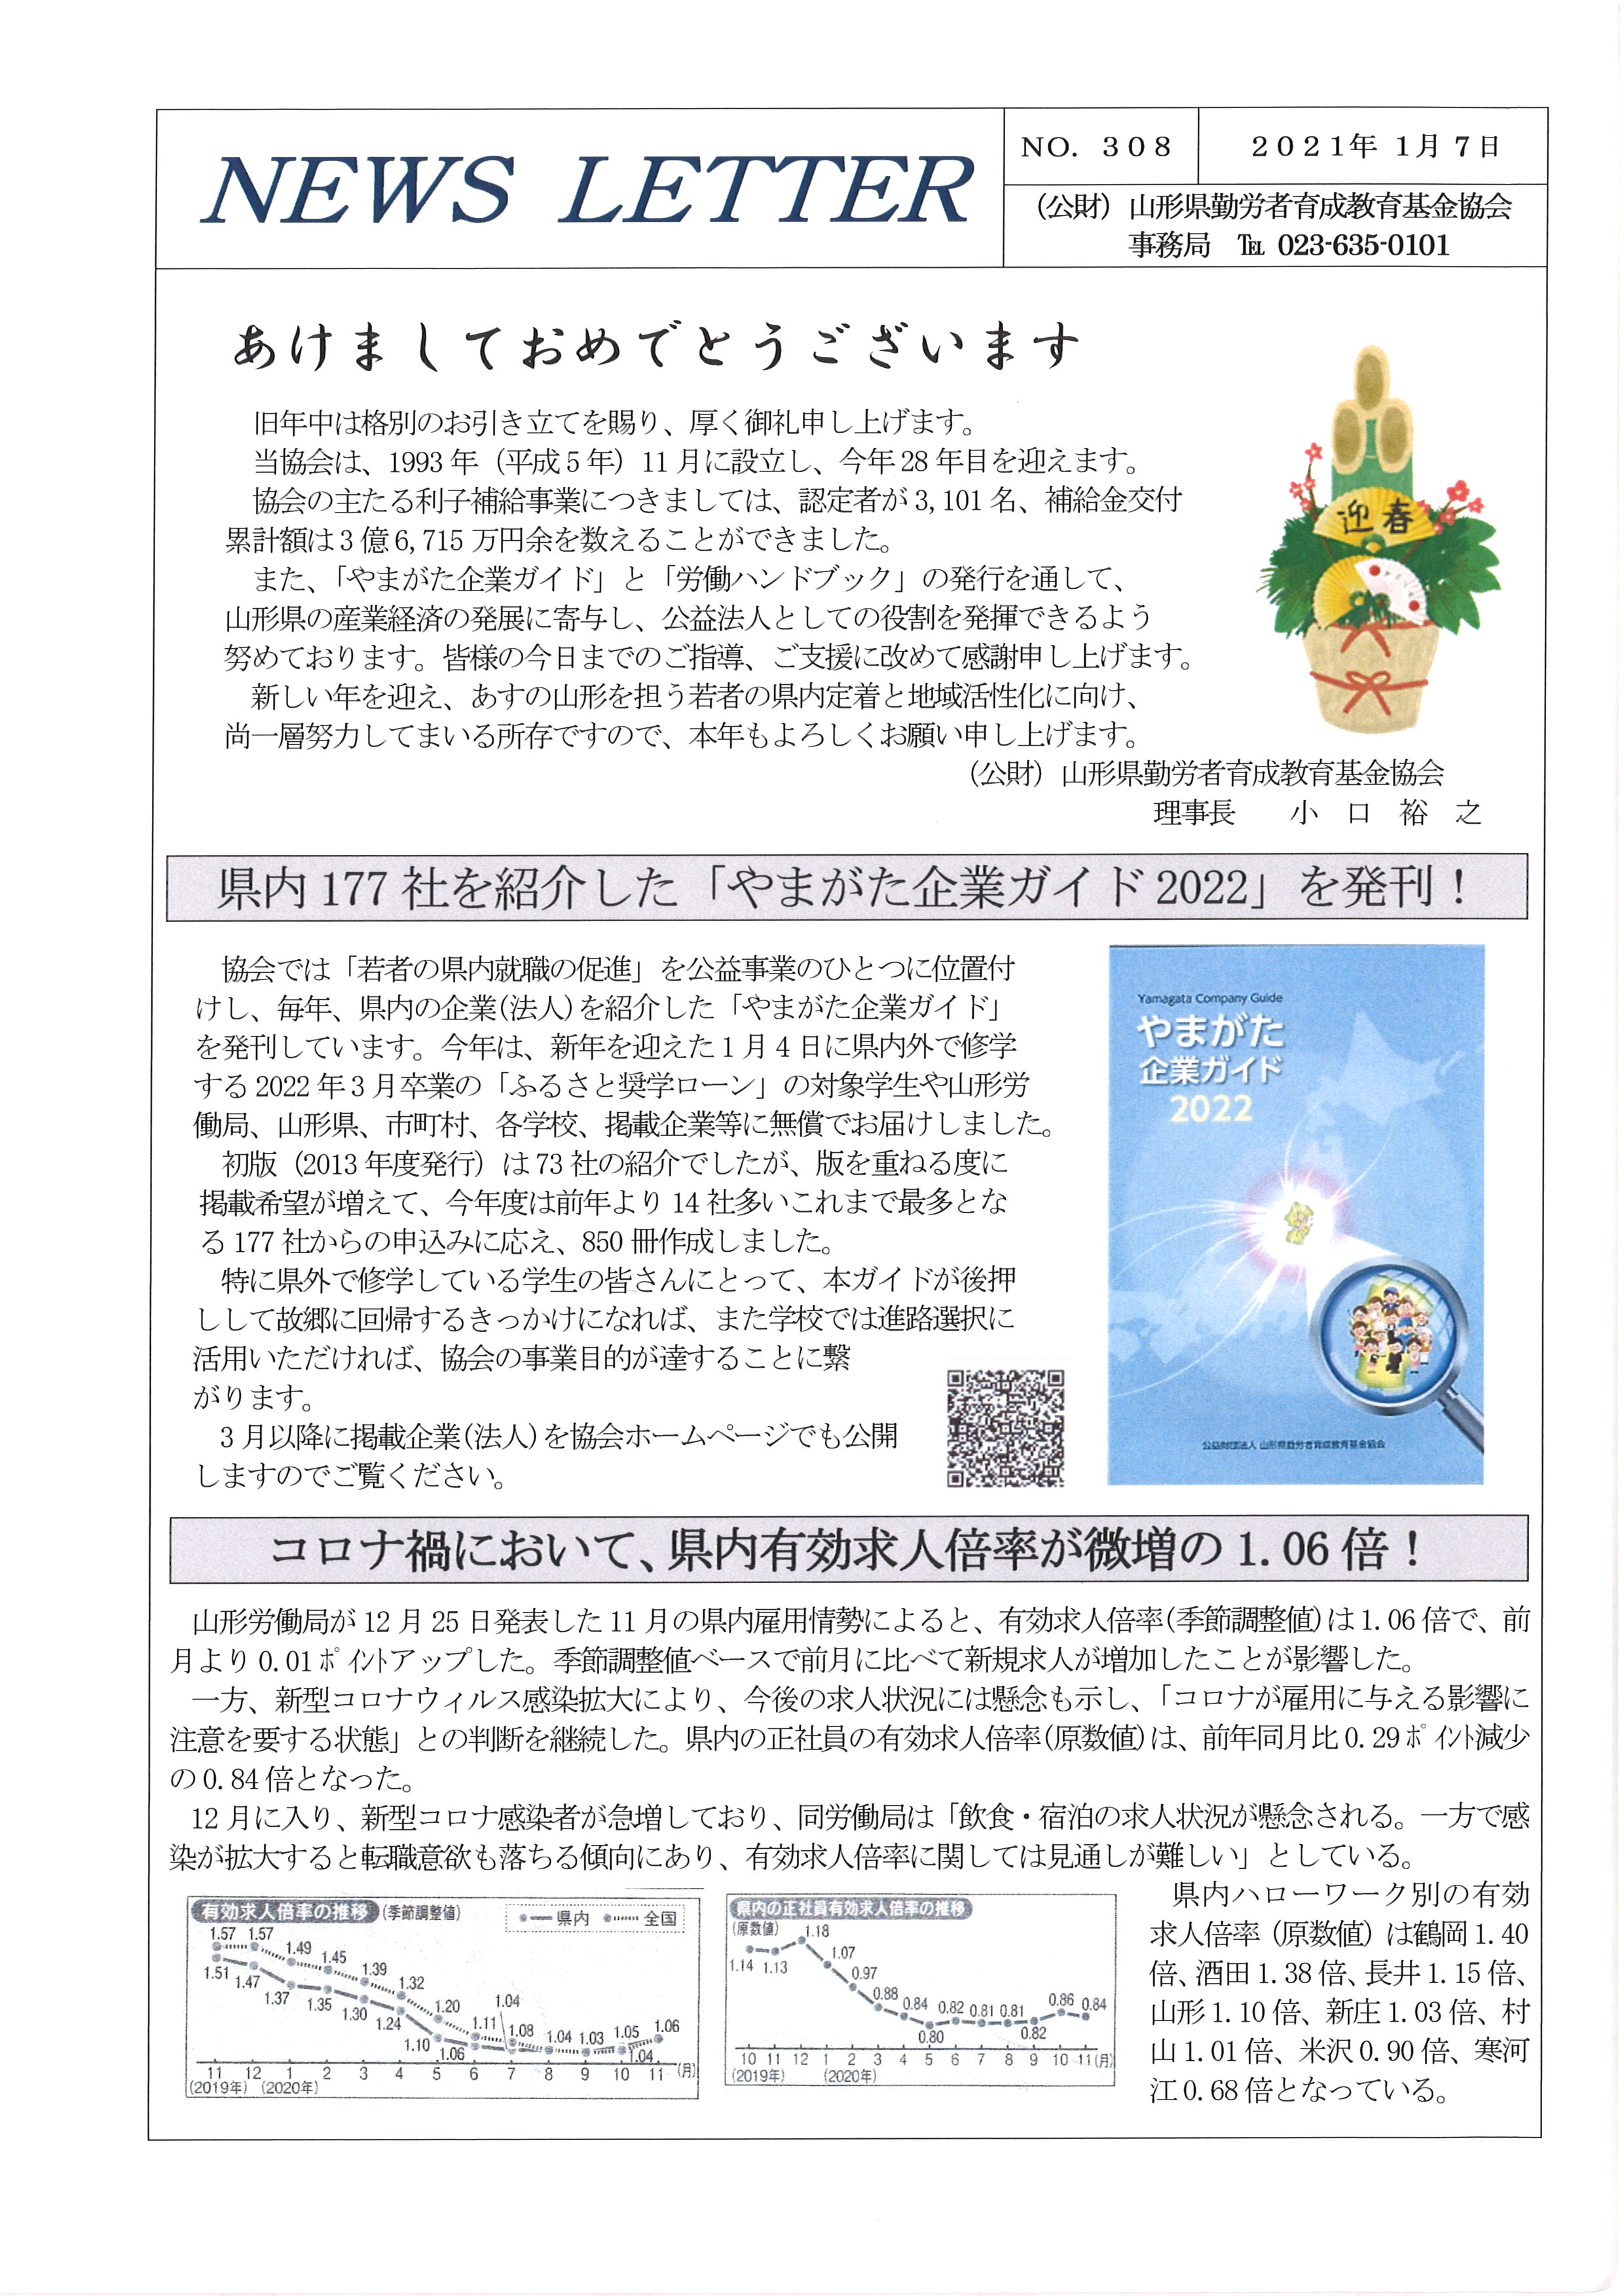 NEWS LETTER No.308 を発行しました:画像